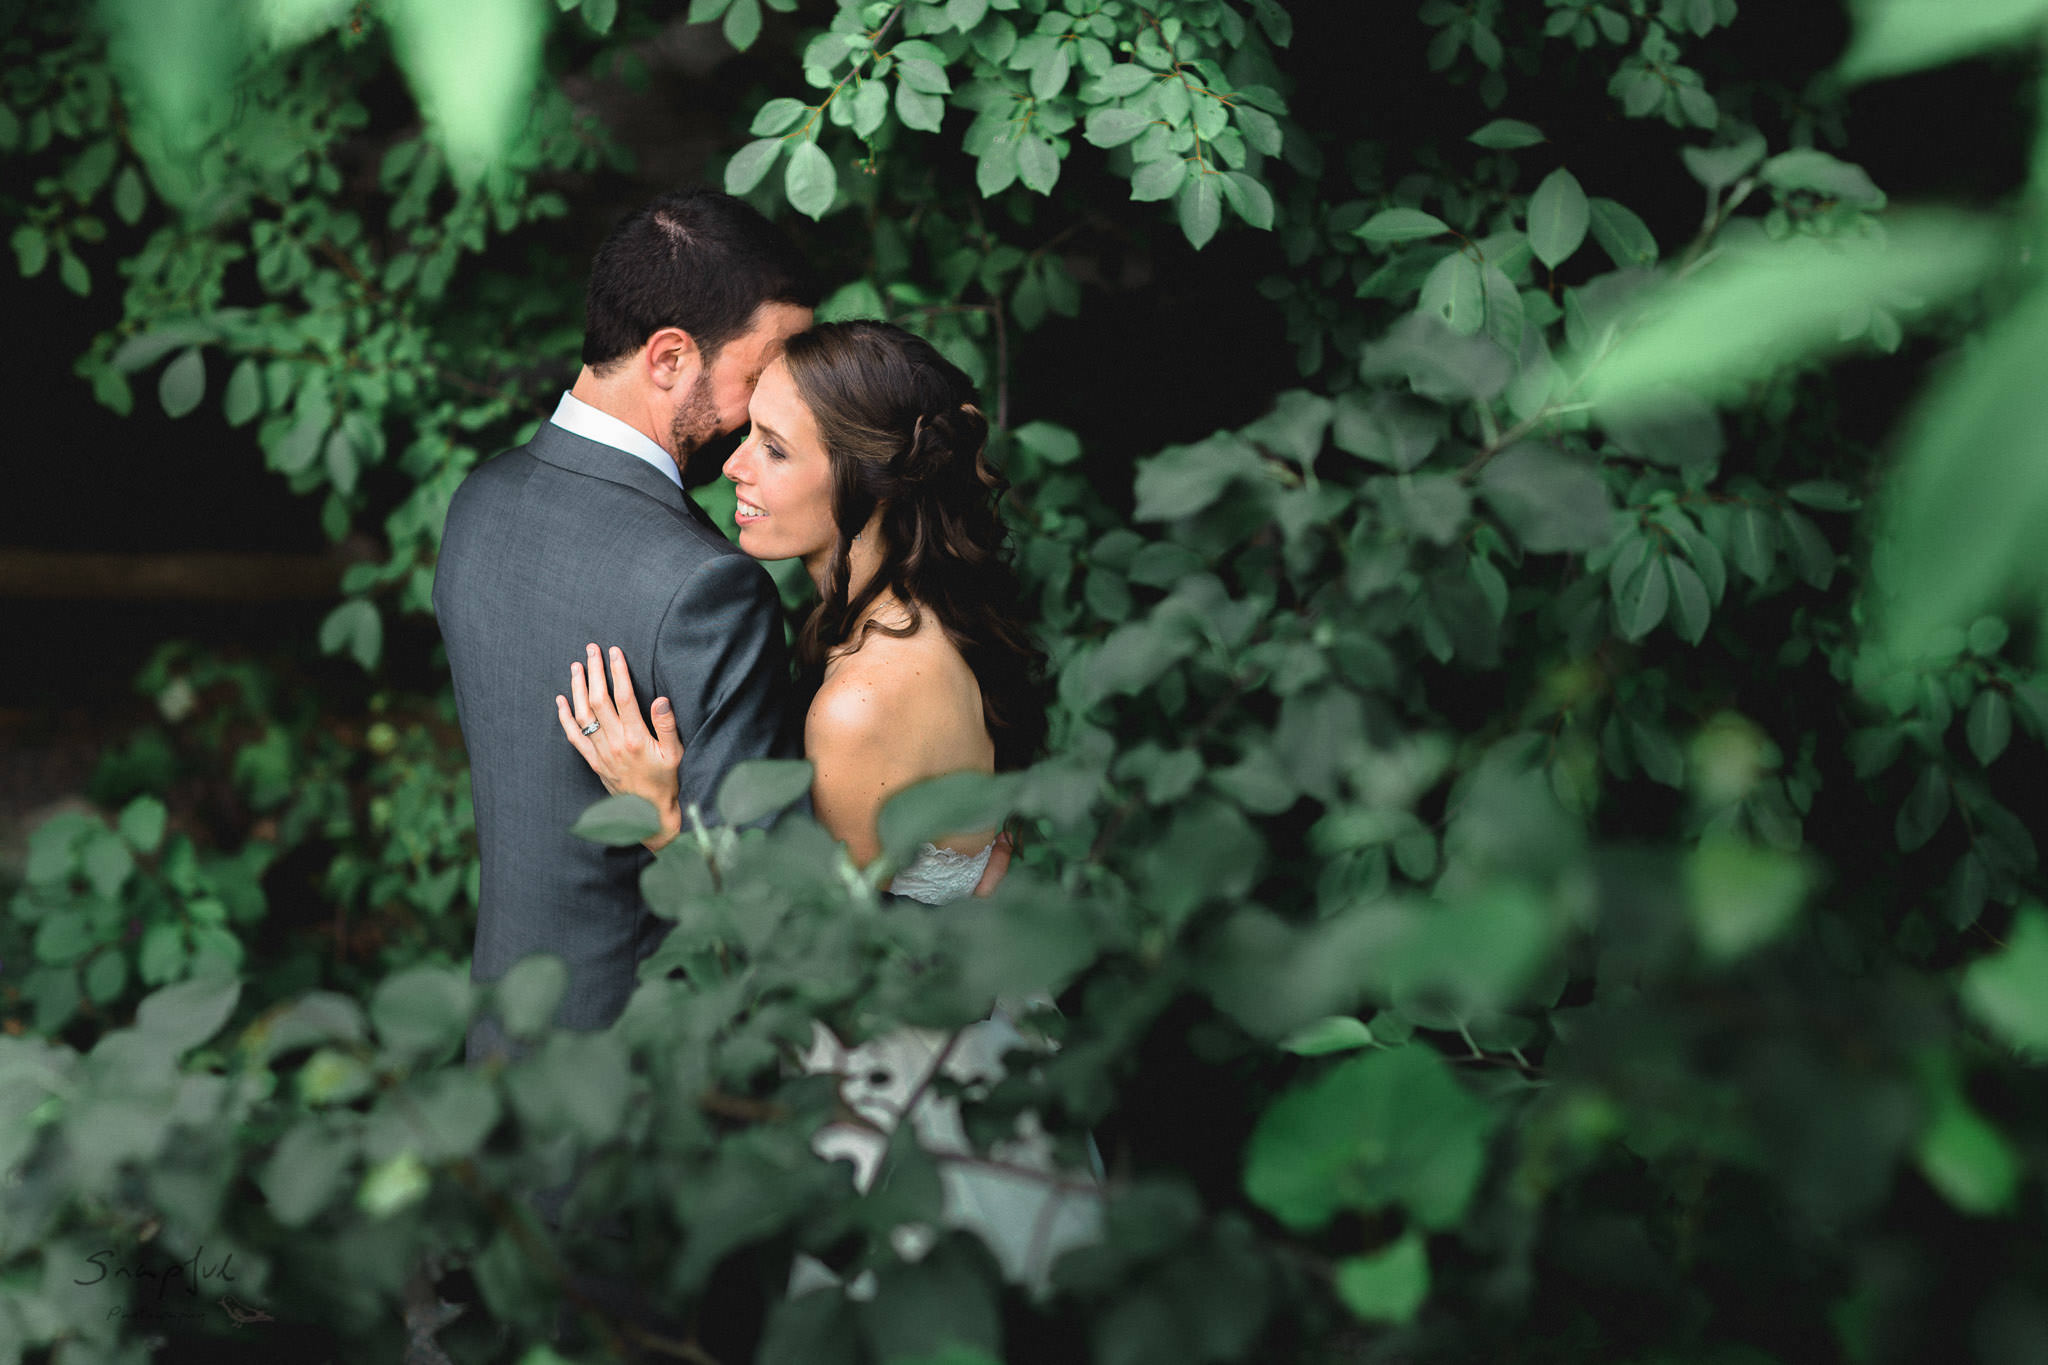 Bride and groom share a moment in the forrest at Alton Mill